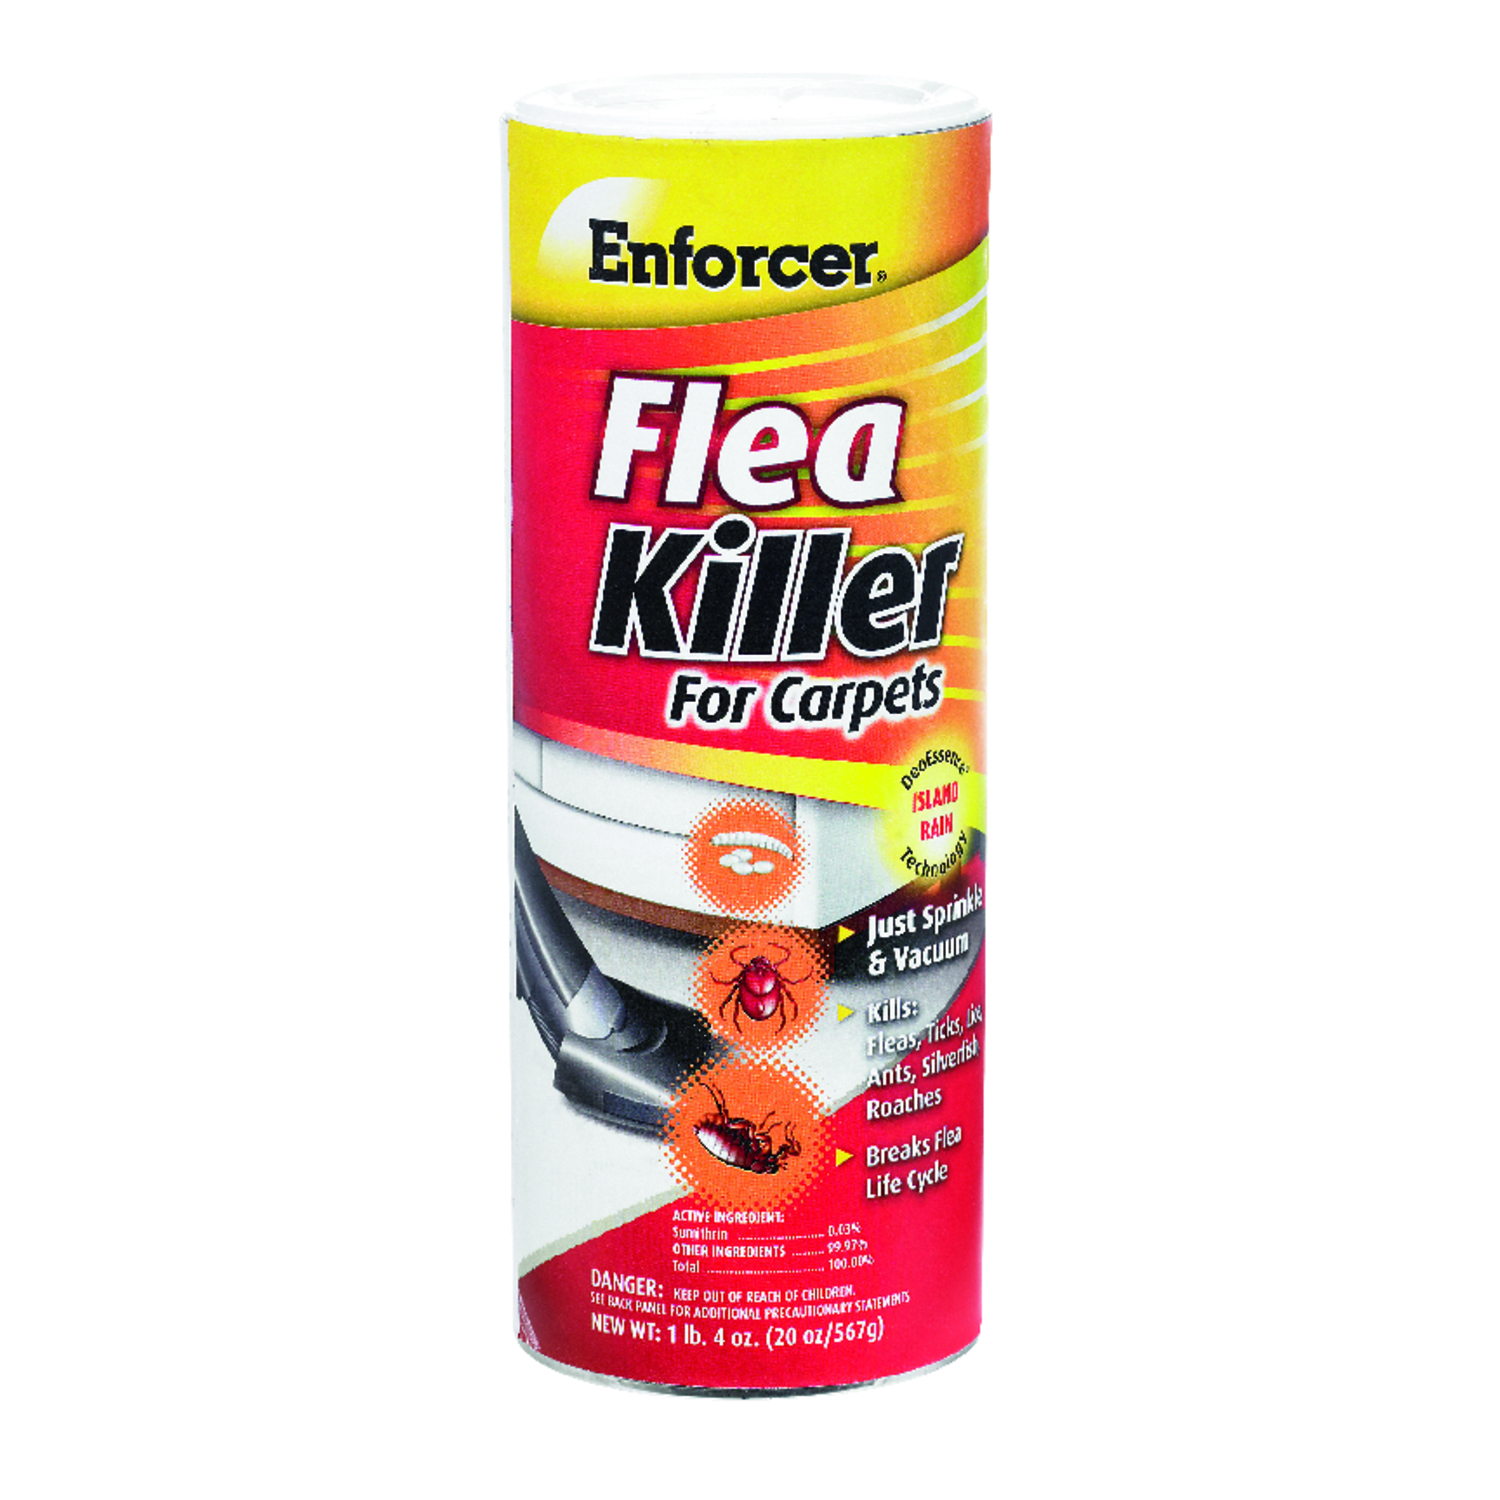 Enforcer  Flea Killer for Carpets  Insect Killer  20 oz.